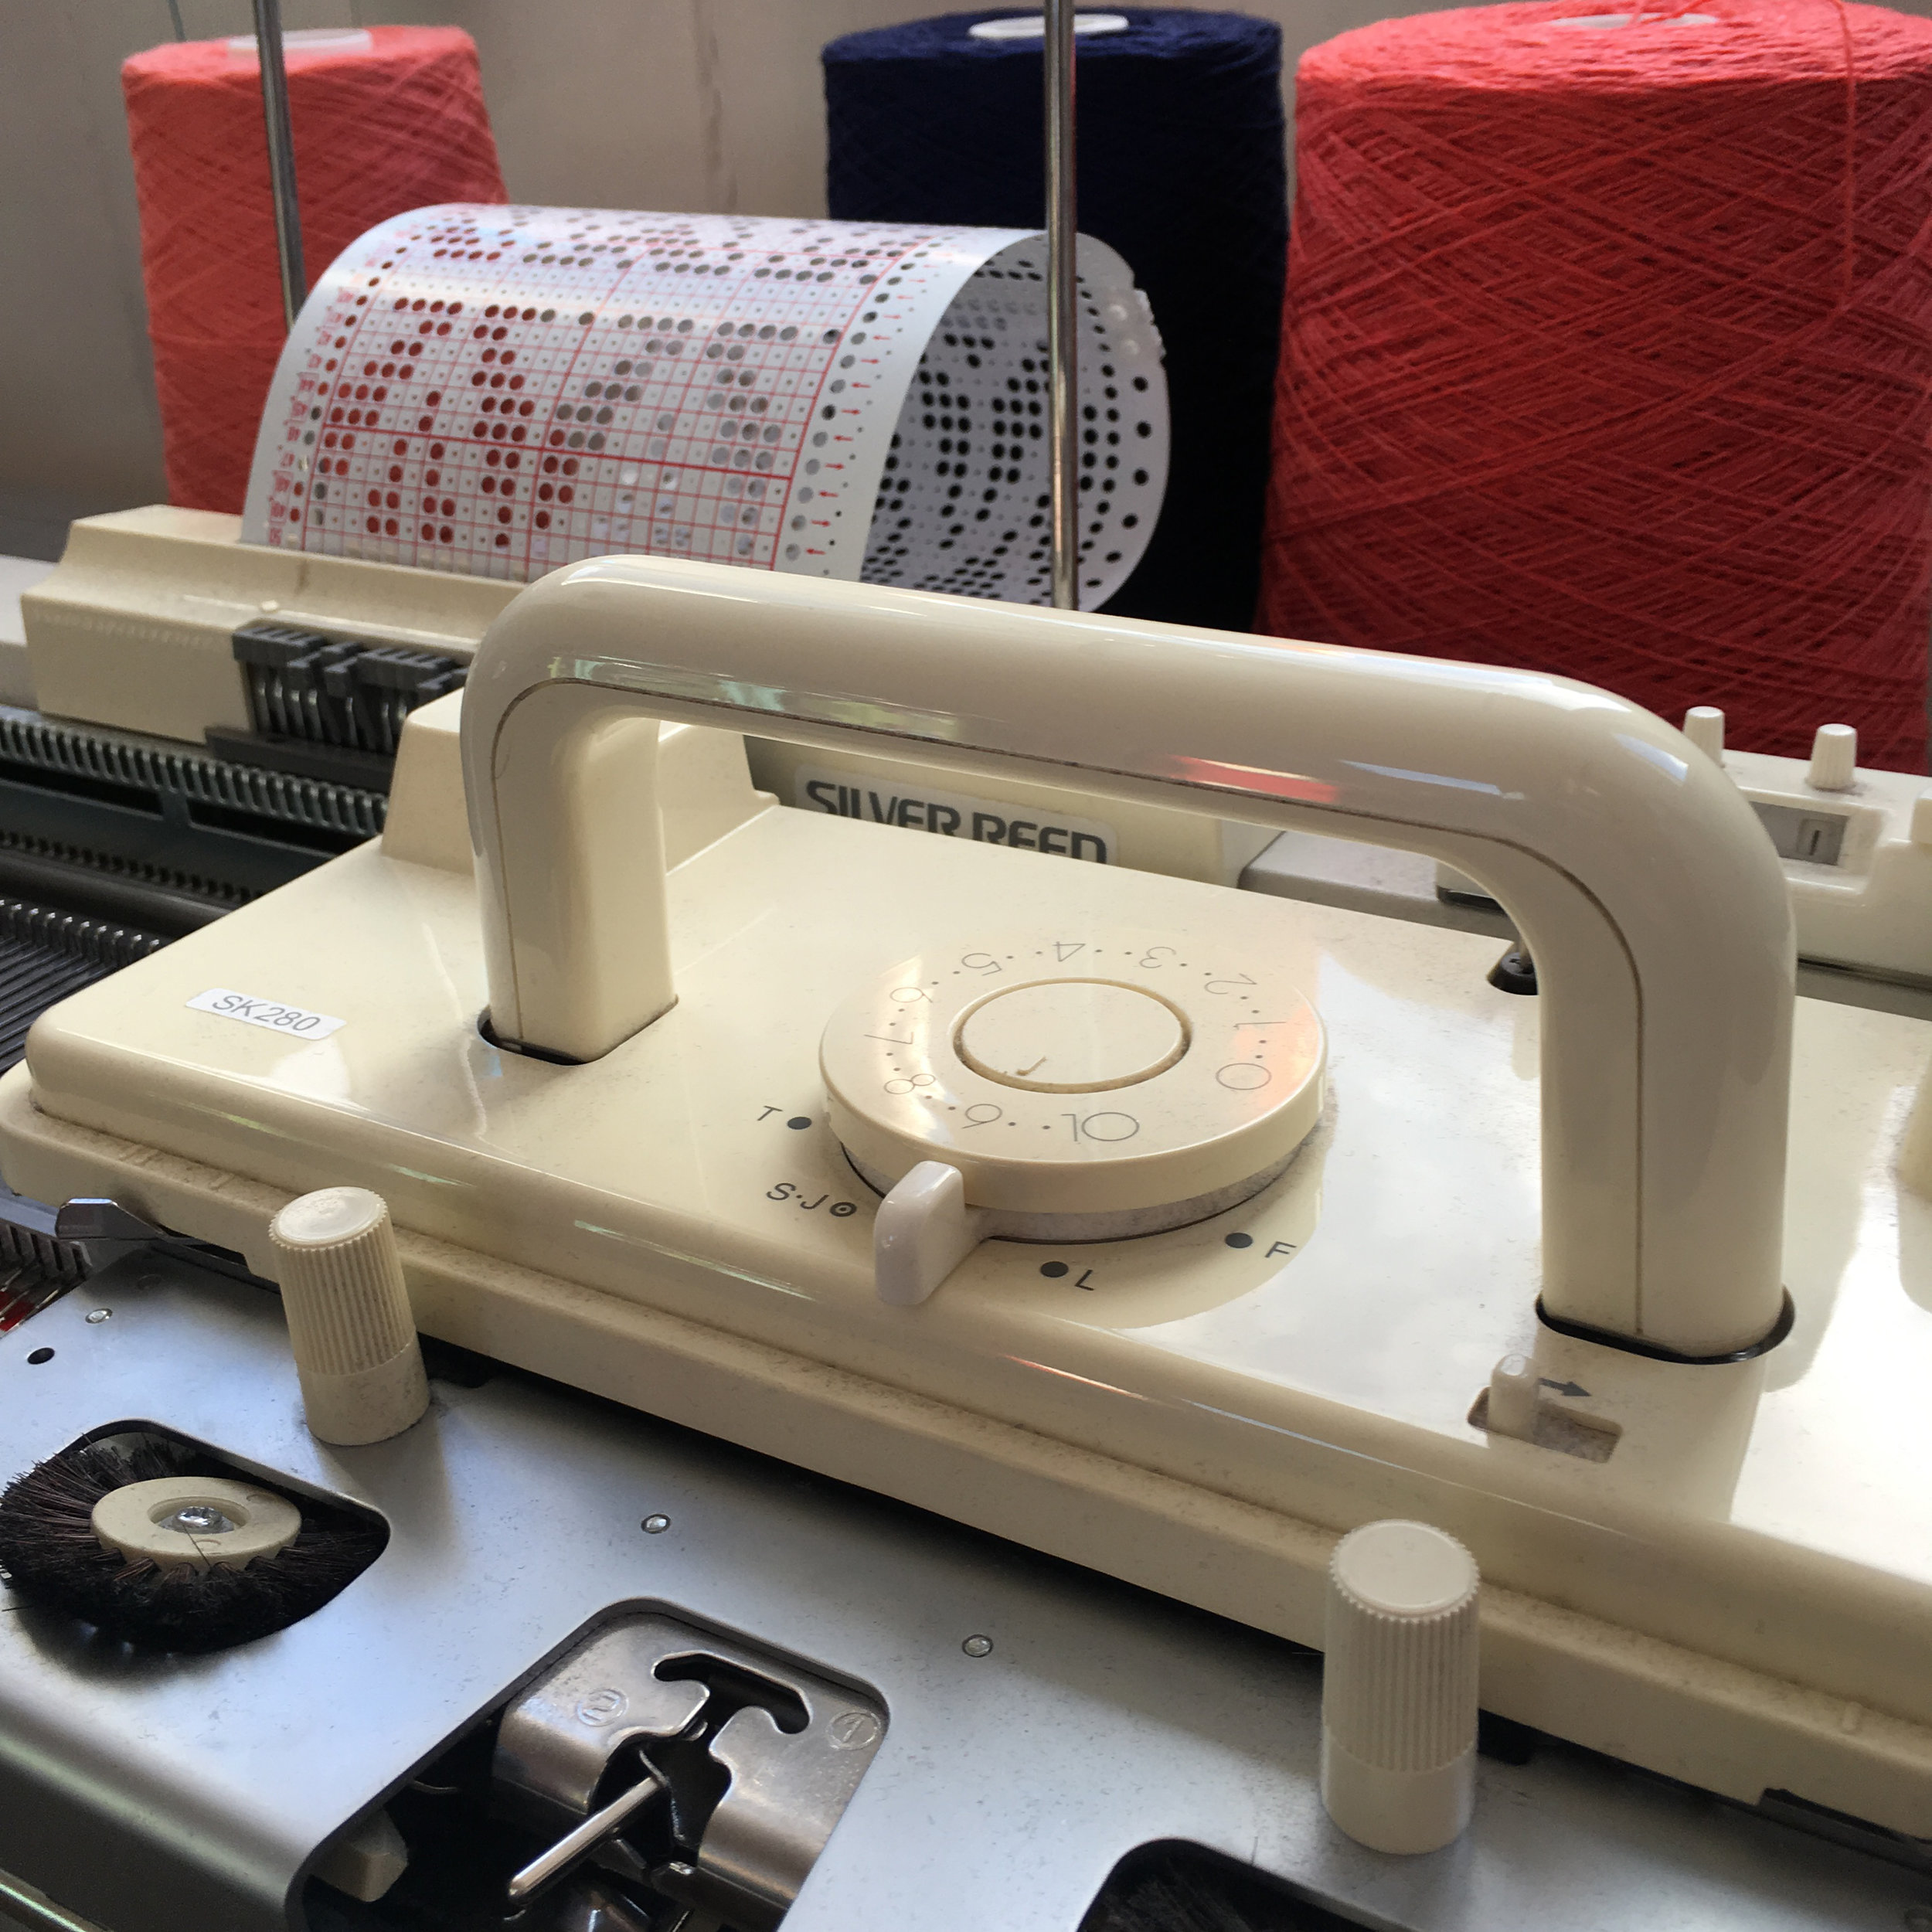 The knitting machine, ready to go!